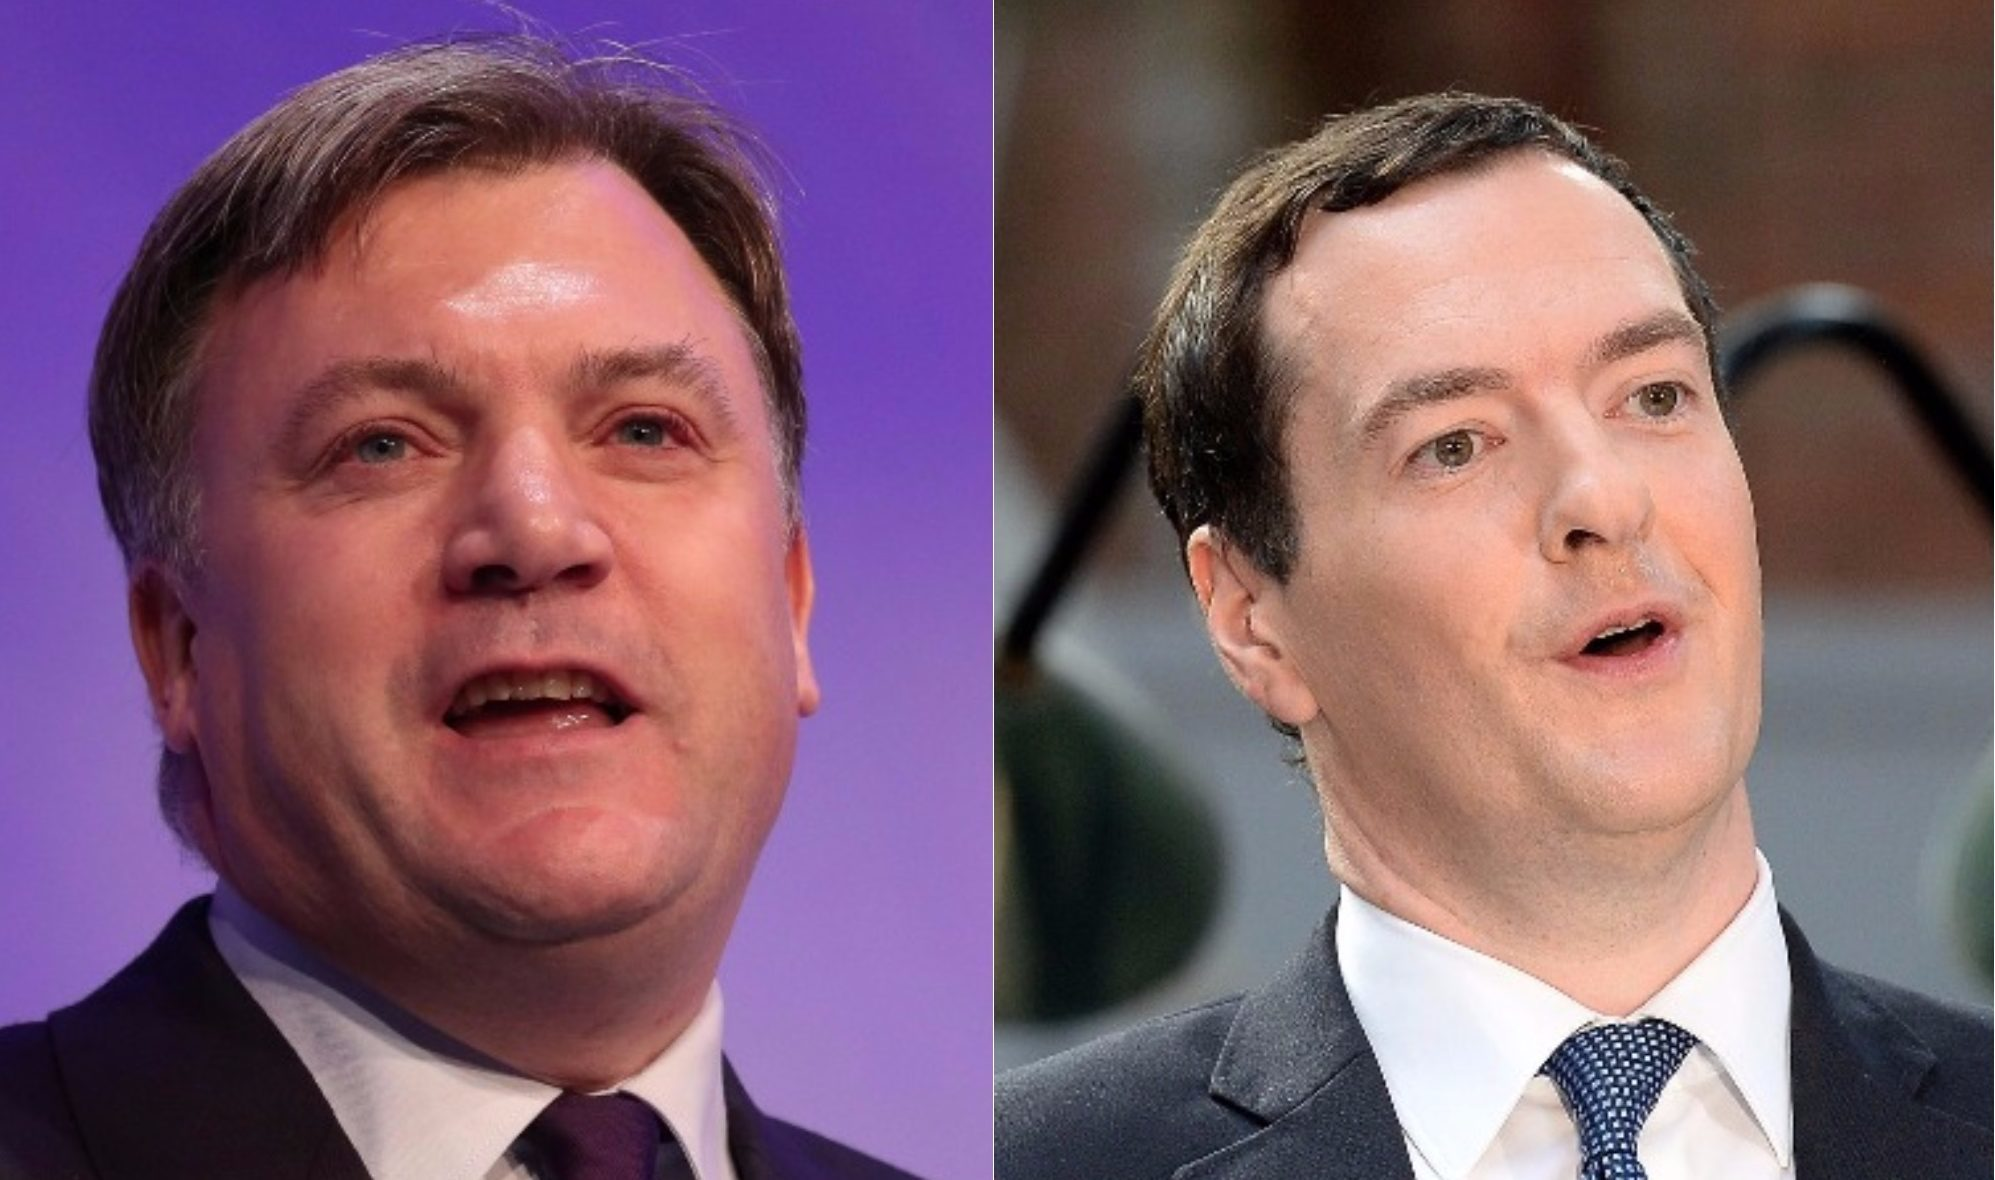 Ed Balls and George Osbourne will be in the ITV for the general election results on June 8th. (Jeff Spicer/Peter MacDiarmid/Getty Images)